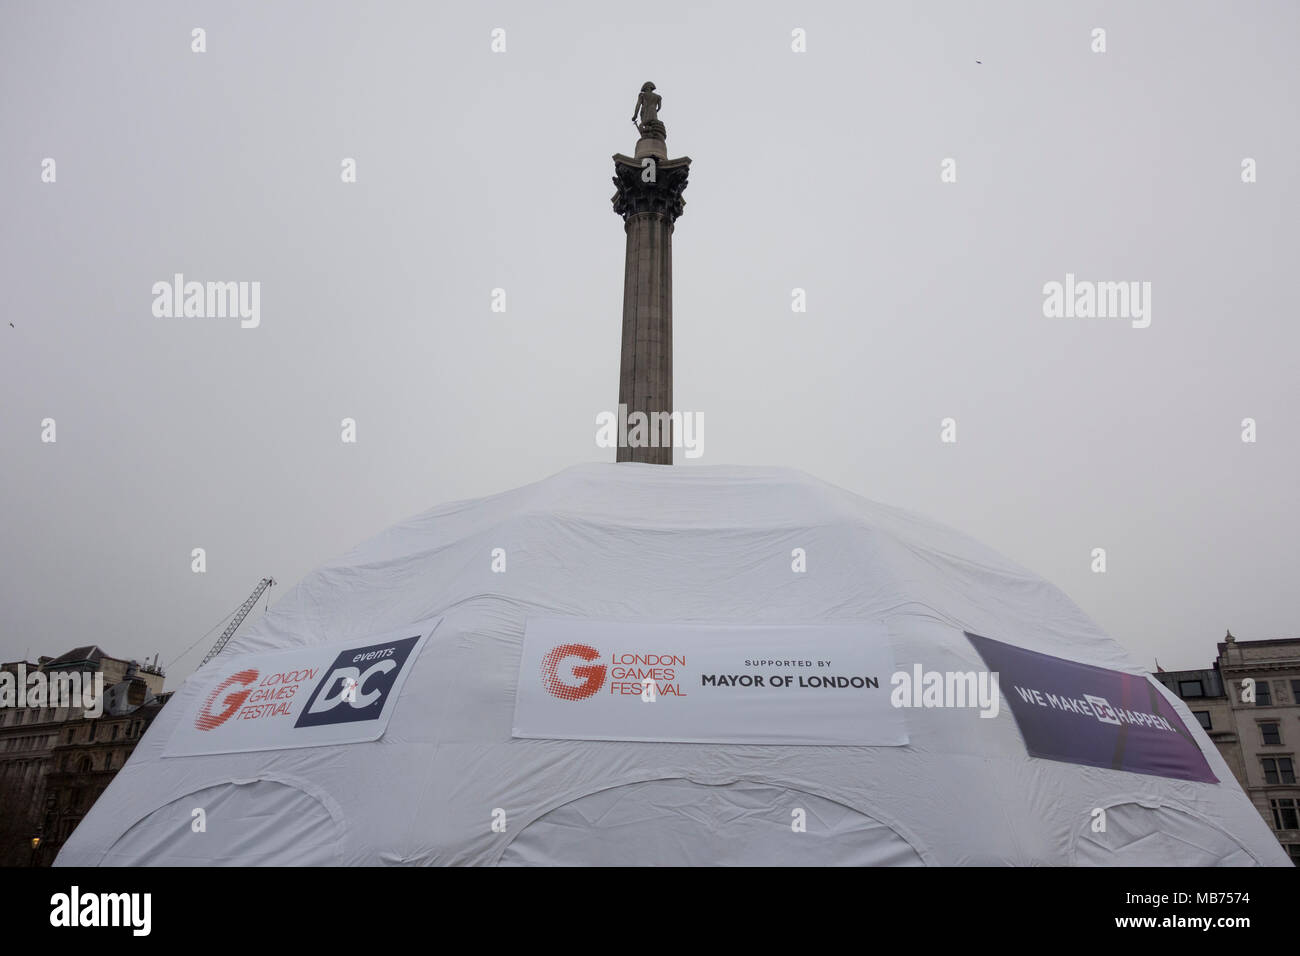 London, UK, 7th April 2018. As part of the London Games Festival, Trafalgar Square was transformed for the day into a games arena featuring traditional and augmented reality games. ©Benjamin John /Alamy Live News - Stock Image